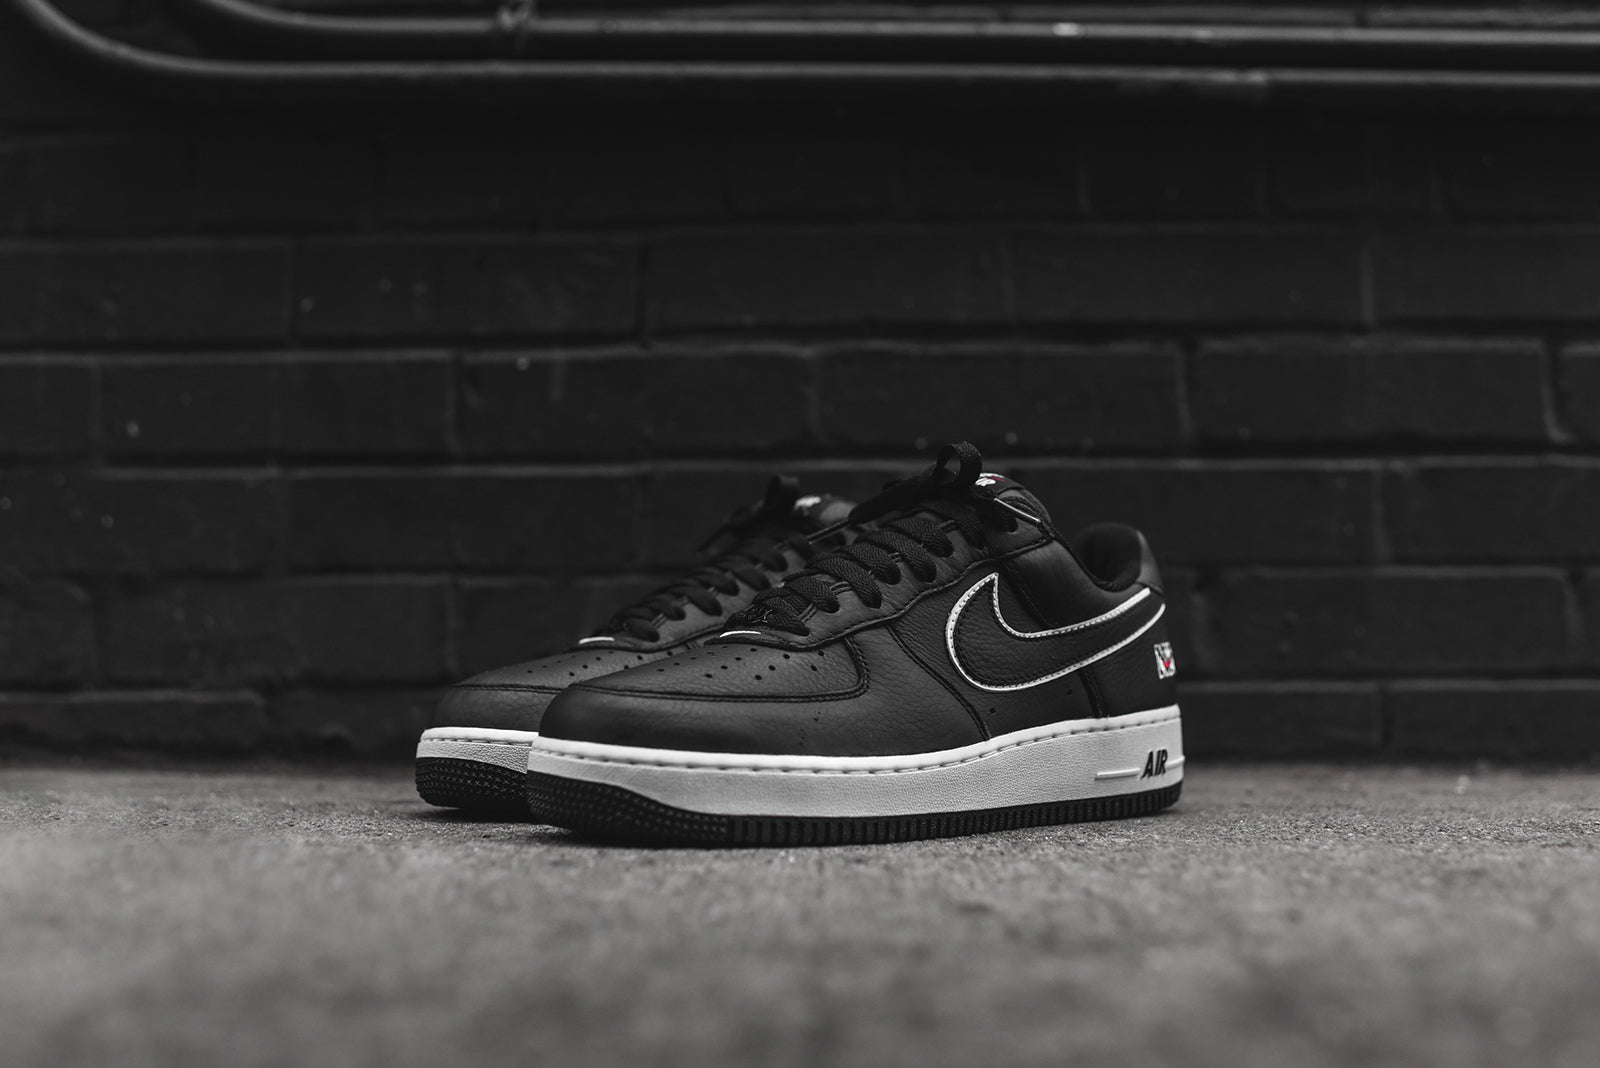 new style d0aa2 99c6f nike air force 1 low retro nyc black white Shop ...